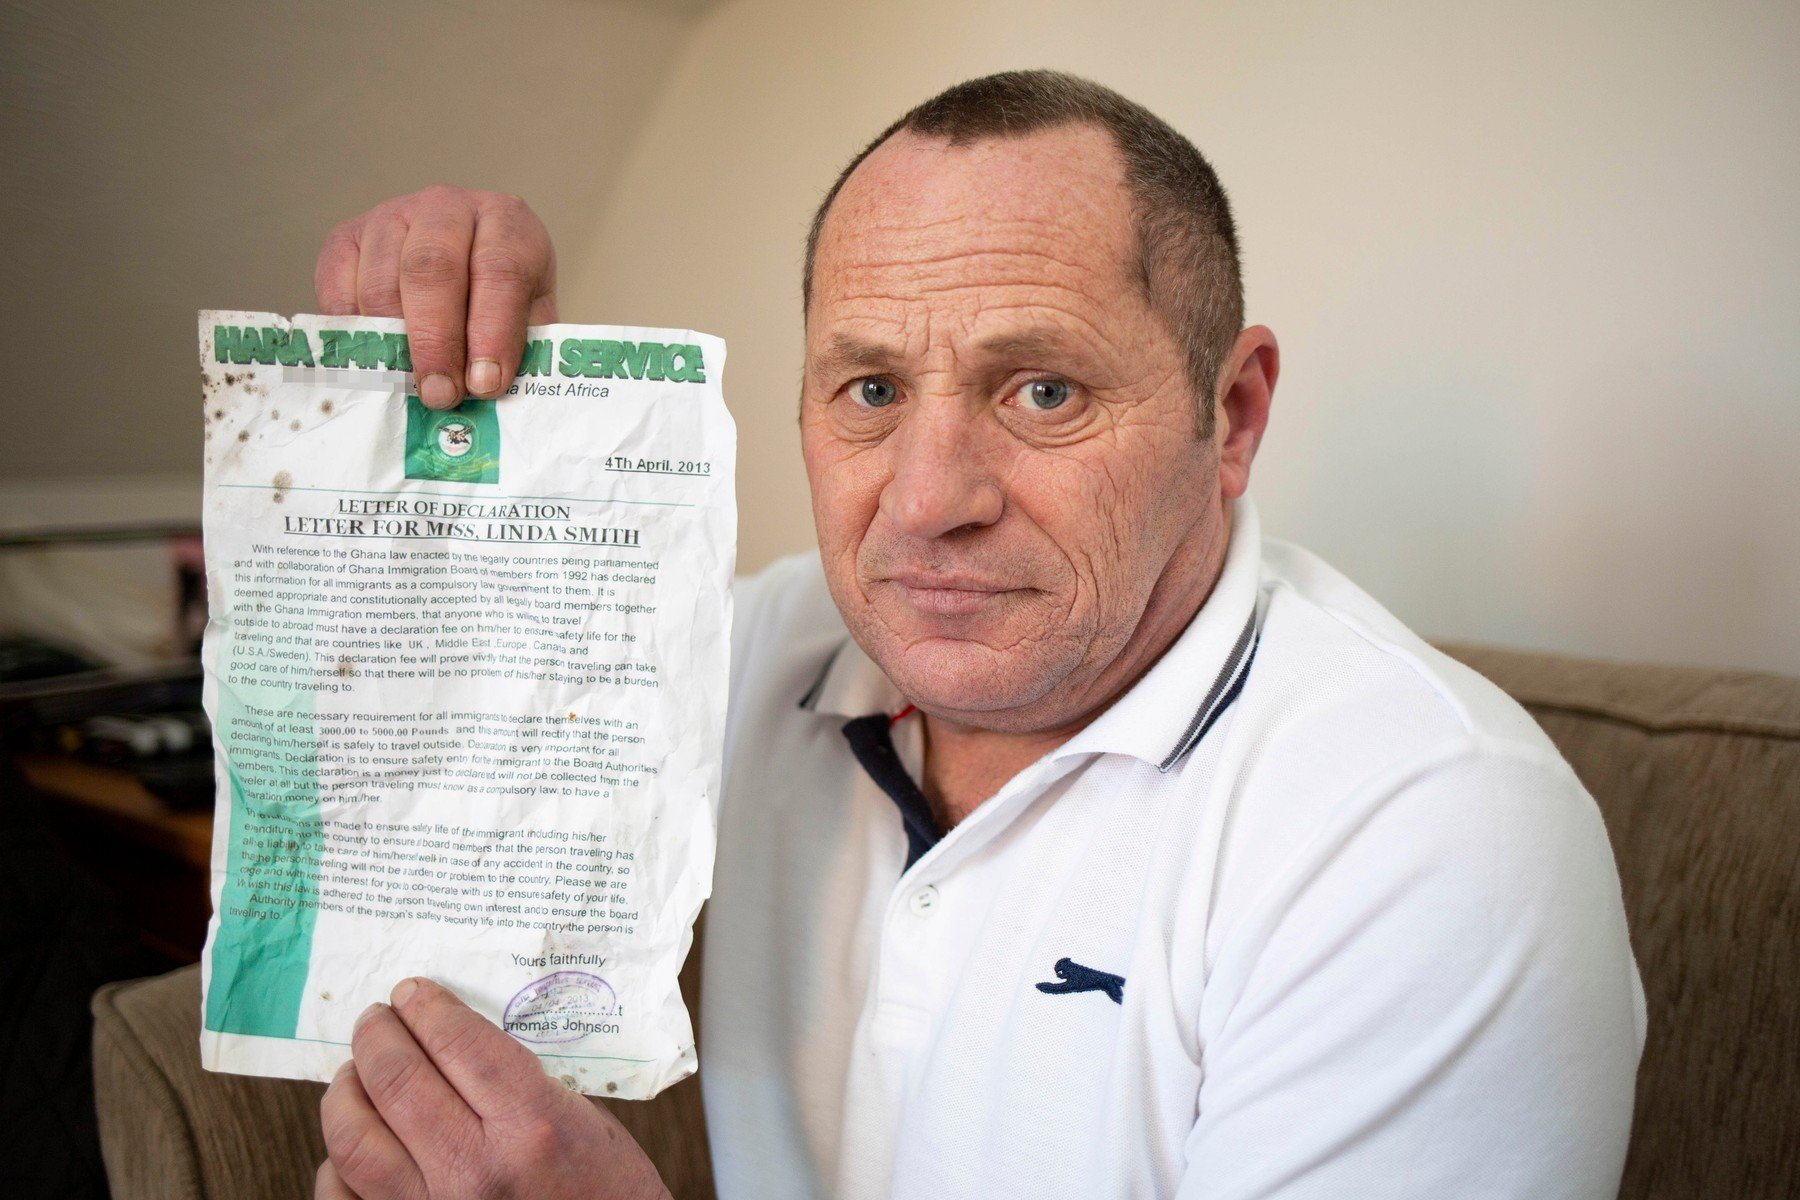 PIC FROM CATERS NEWS (PICTURED Dave Hazel ) A builder who was set to MARRY his online lover has been left devastated after claiming she scammed him out of 15,000. Dave Hazel, 59, says he fell in love with a called Linda Smith in 2013 and the pair spent the next three years exchanging messages and building on their relationship. During this time, Dave - who had never met Linda in person - was convinced his online lover was going to move from Canada to the UK. Yet as her requests for financial aid became more frequent and extreme, Dave found himself caught in a web of lies., Image: 416234507, License: Rights-managed, Restrictions: ., Model Release: no, Credit line: Profimedia, Caters News